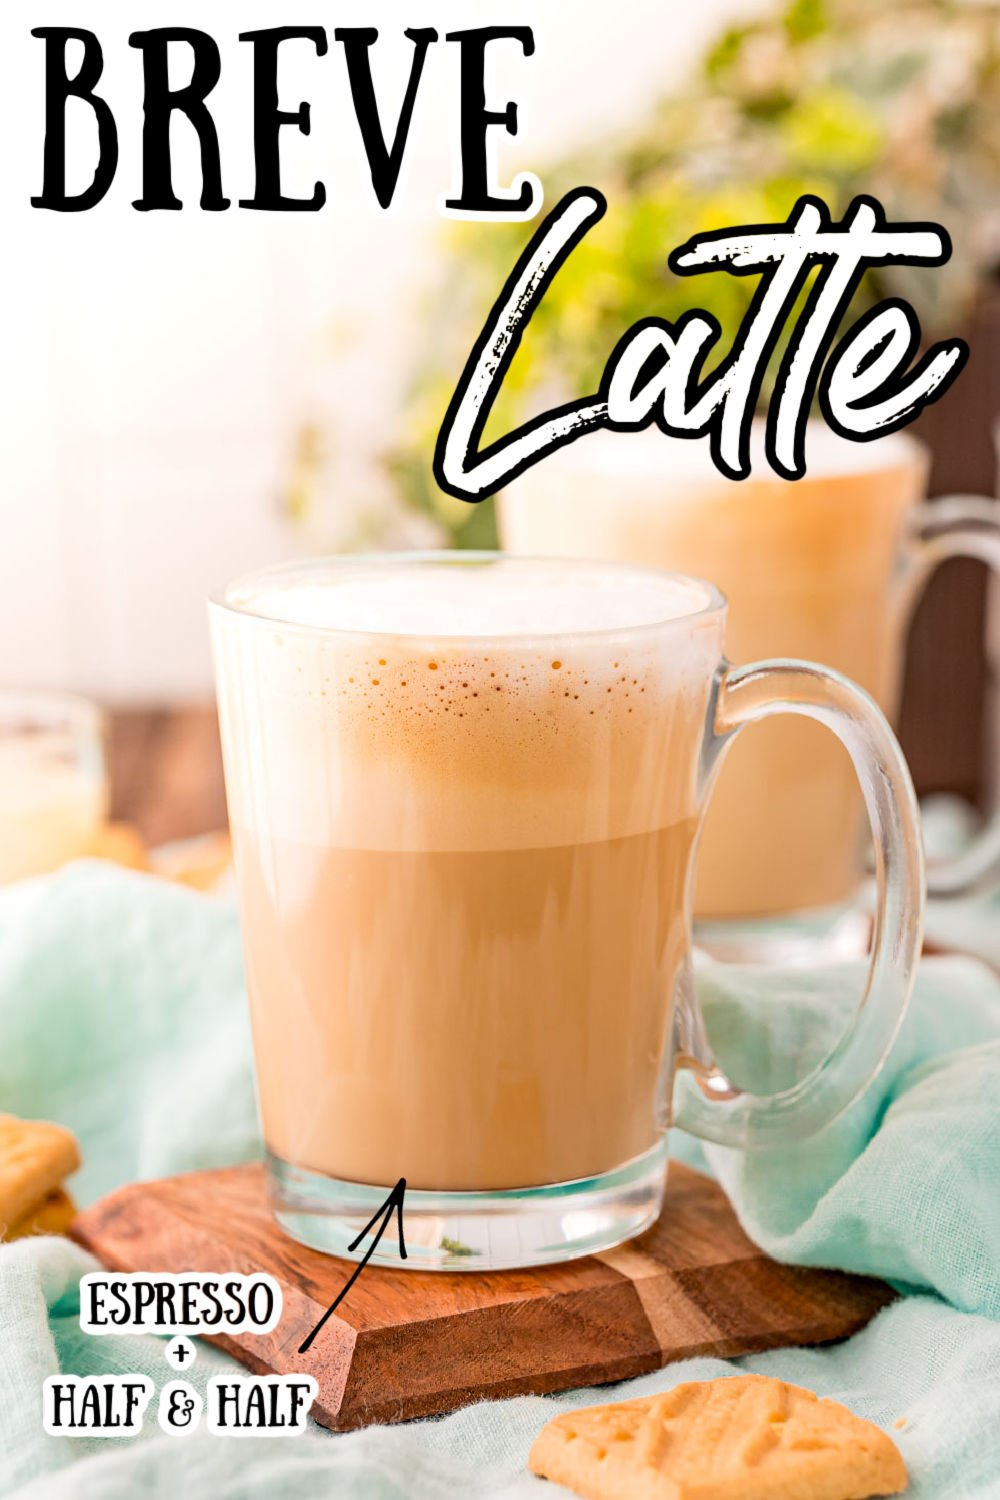 This Breve Latte recipe is a rich and creamy coffee beverage that's made with half & half and a shot of espresso! The perfect latte to fill your morning mug with! via @sugarandsoulco